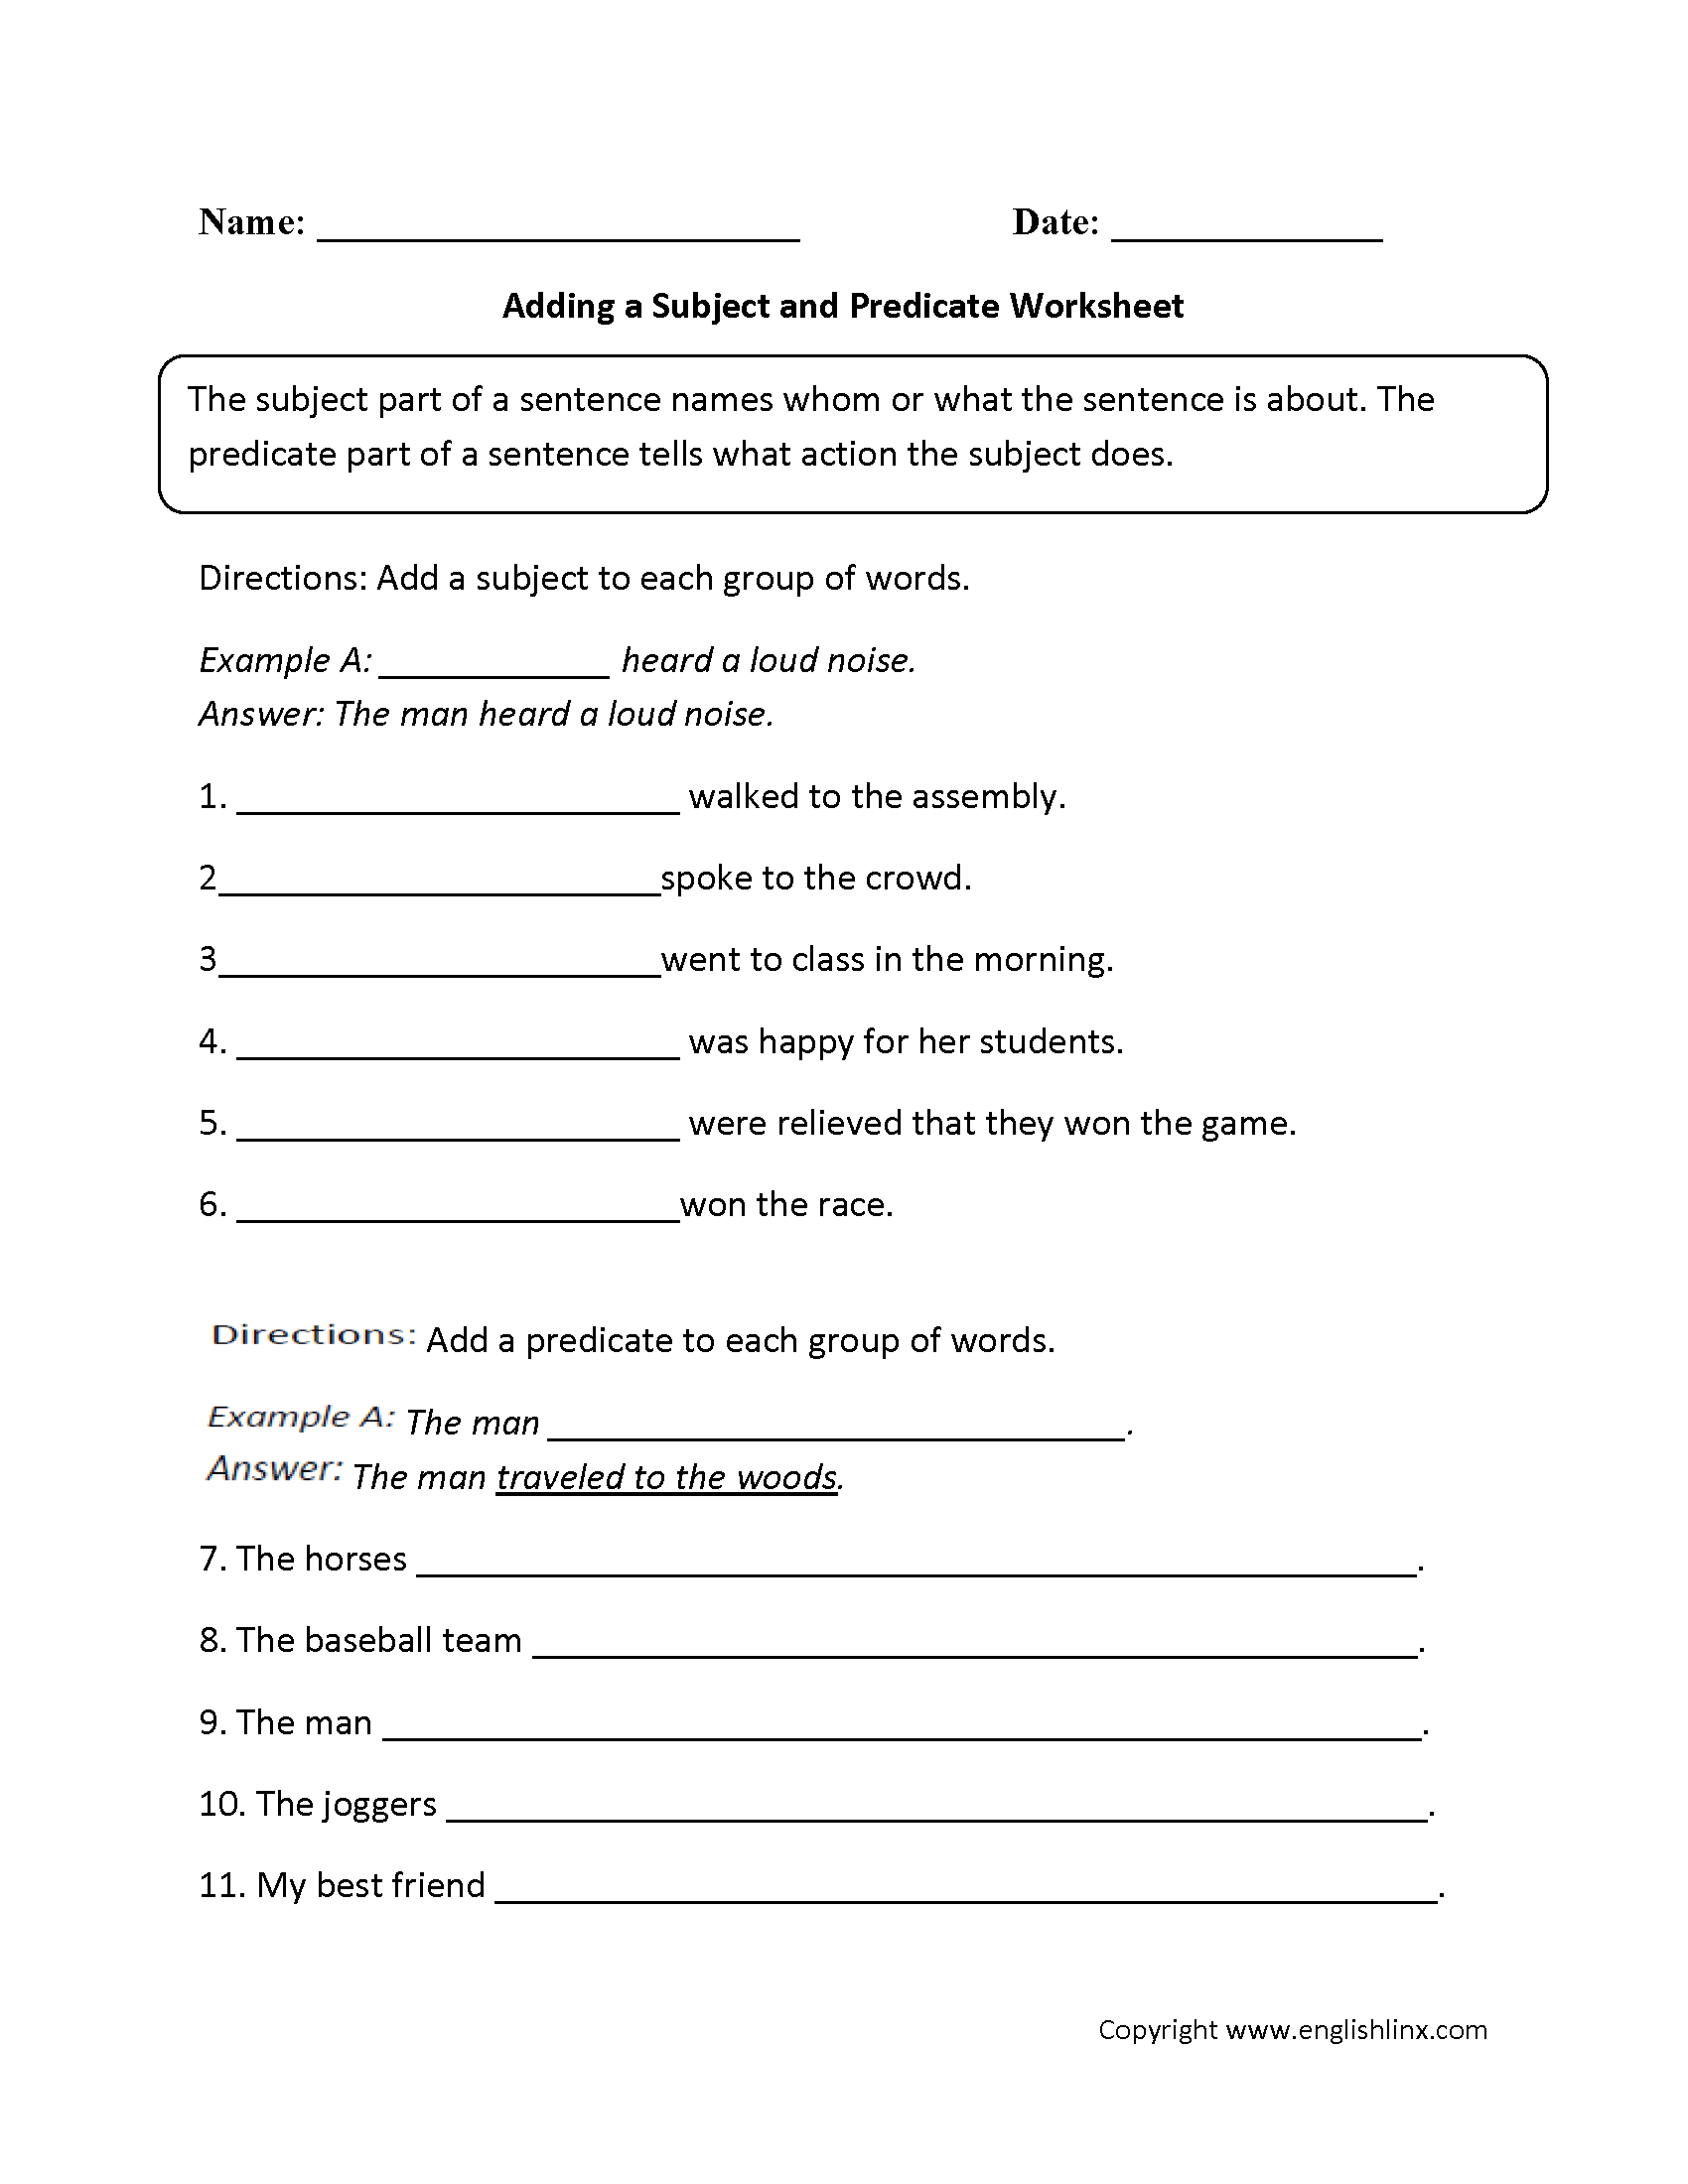 Free Worksheet Grammar Worksheets 7th Grade englishlinx com subject and predicate worksheets worksheet